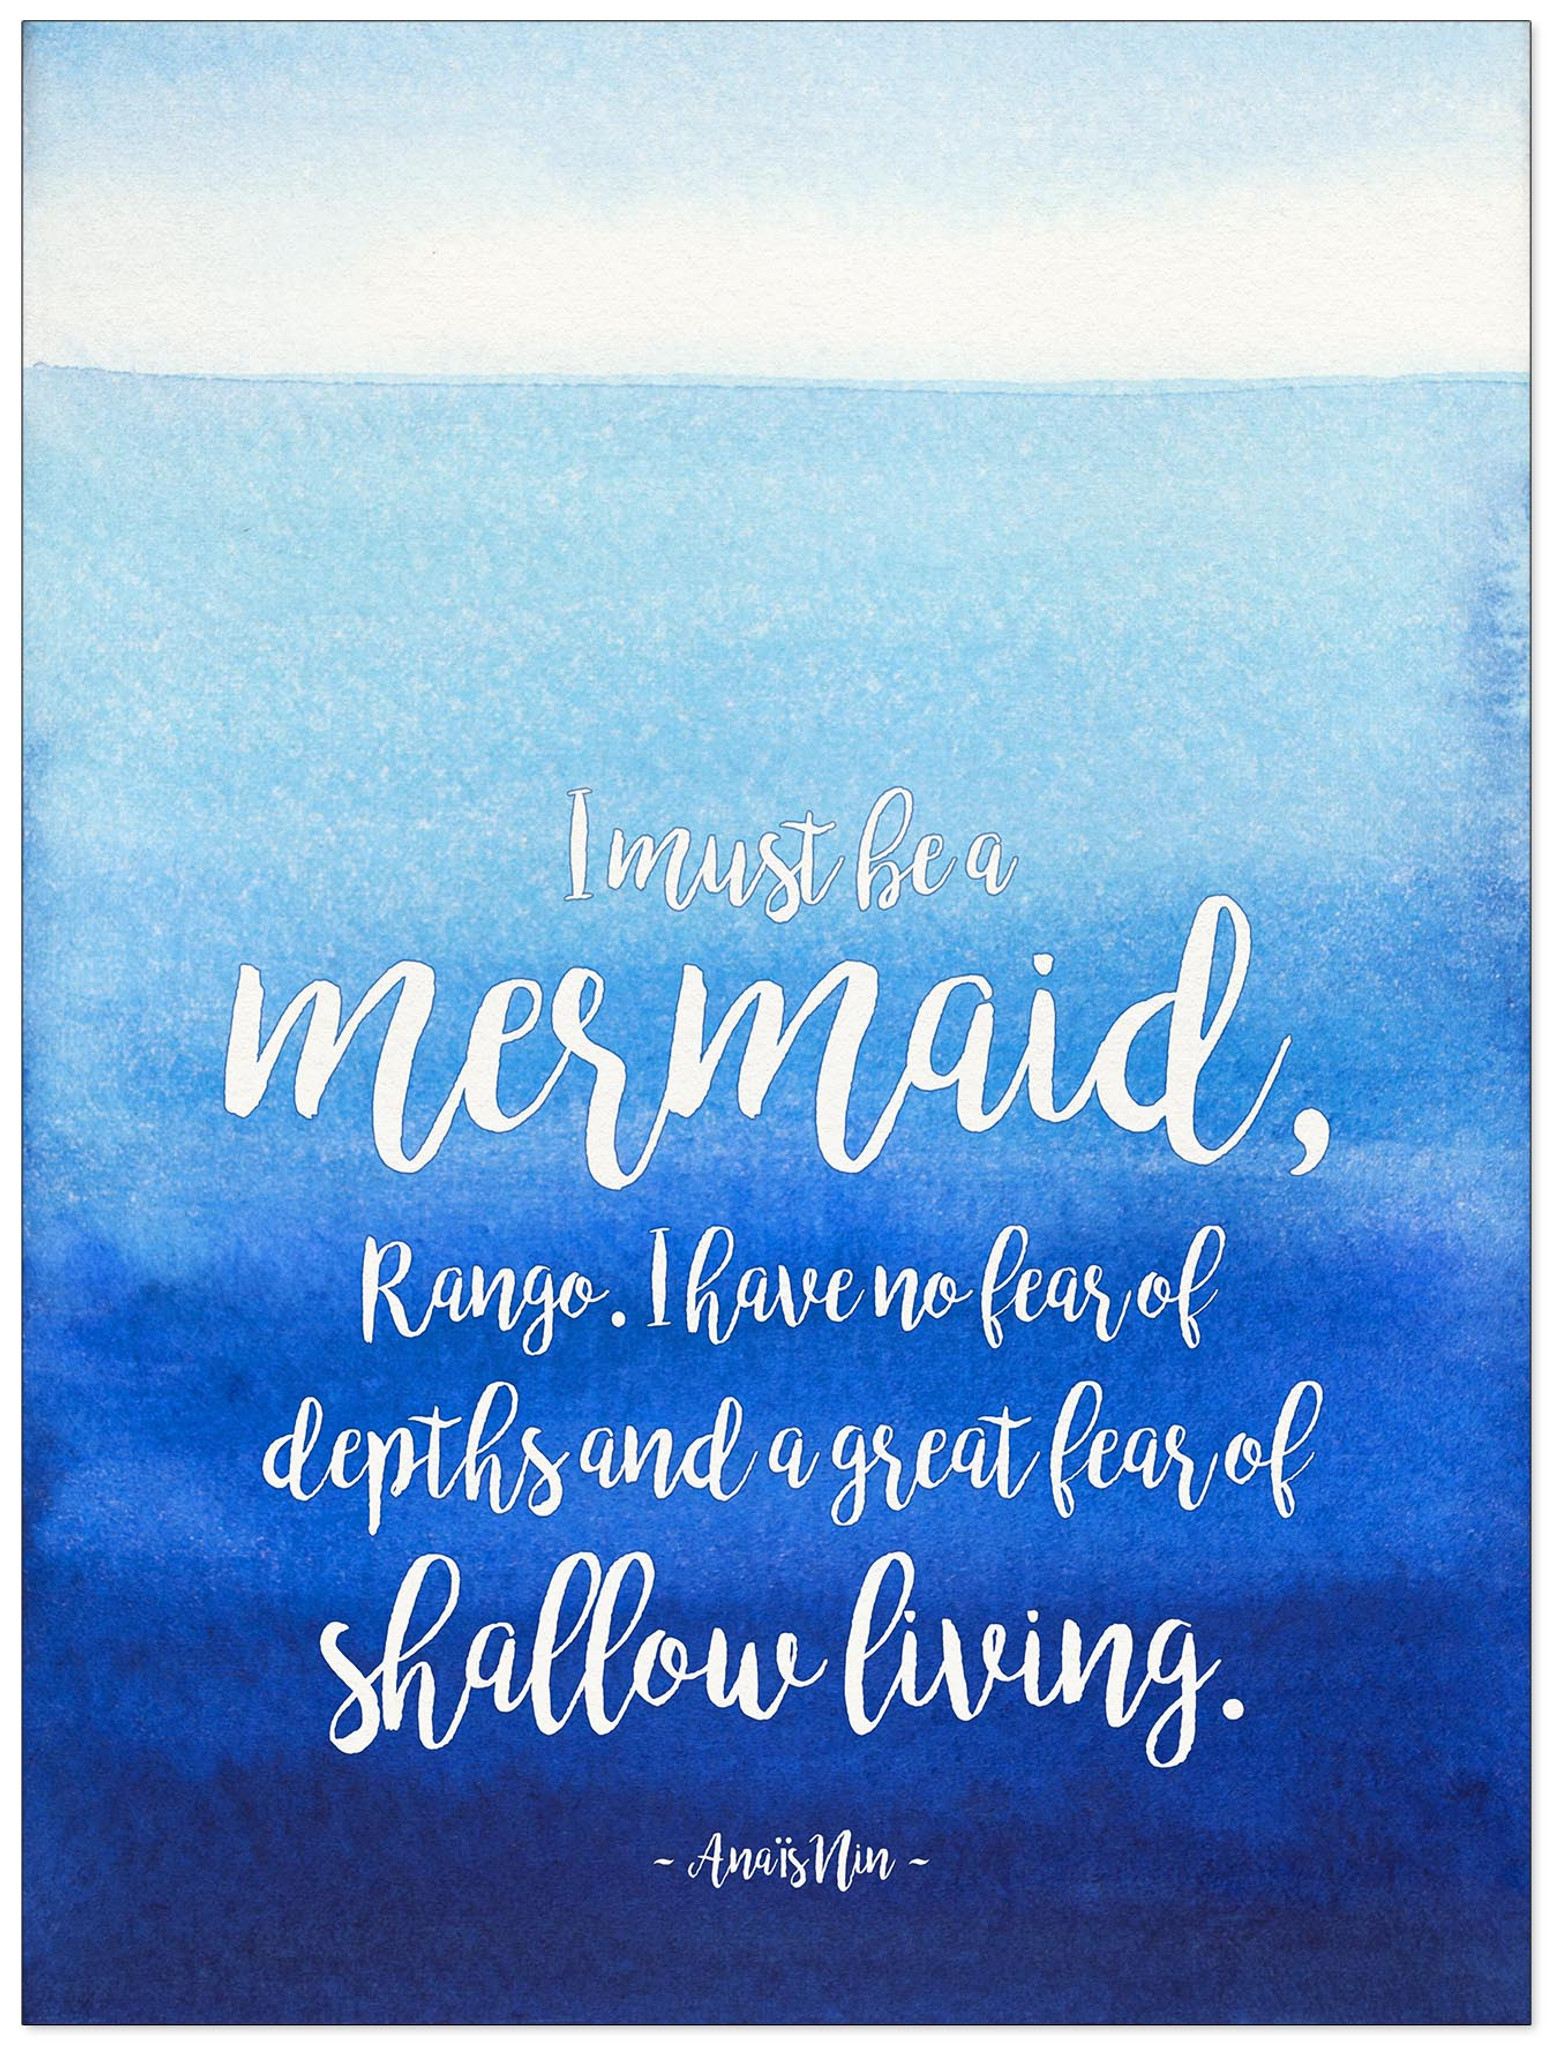 i must be a mermaid literary quote watercolor anais nin fine art